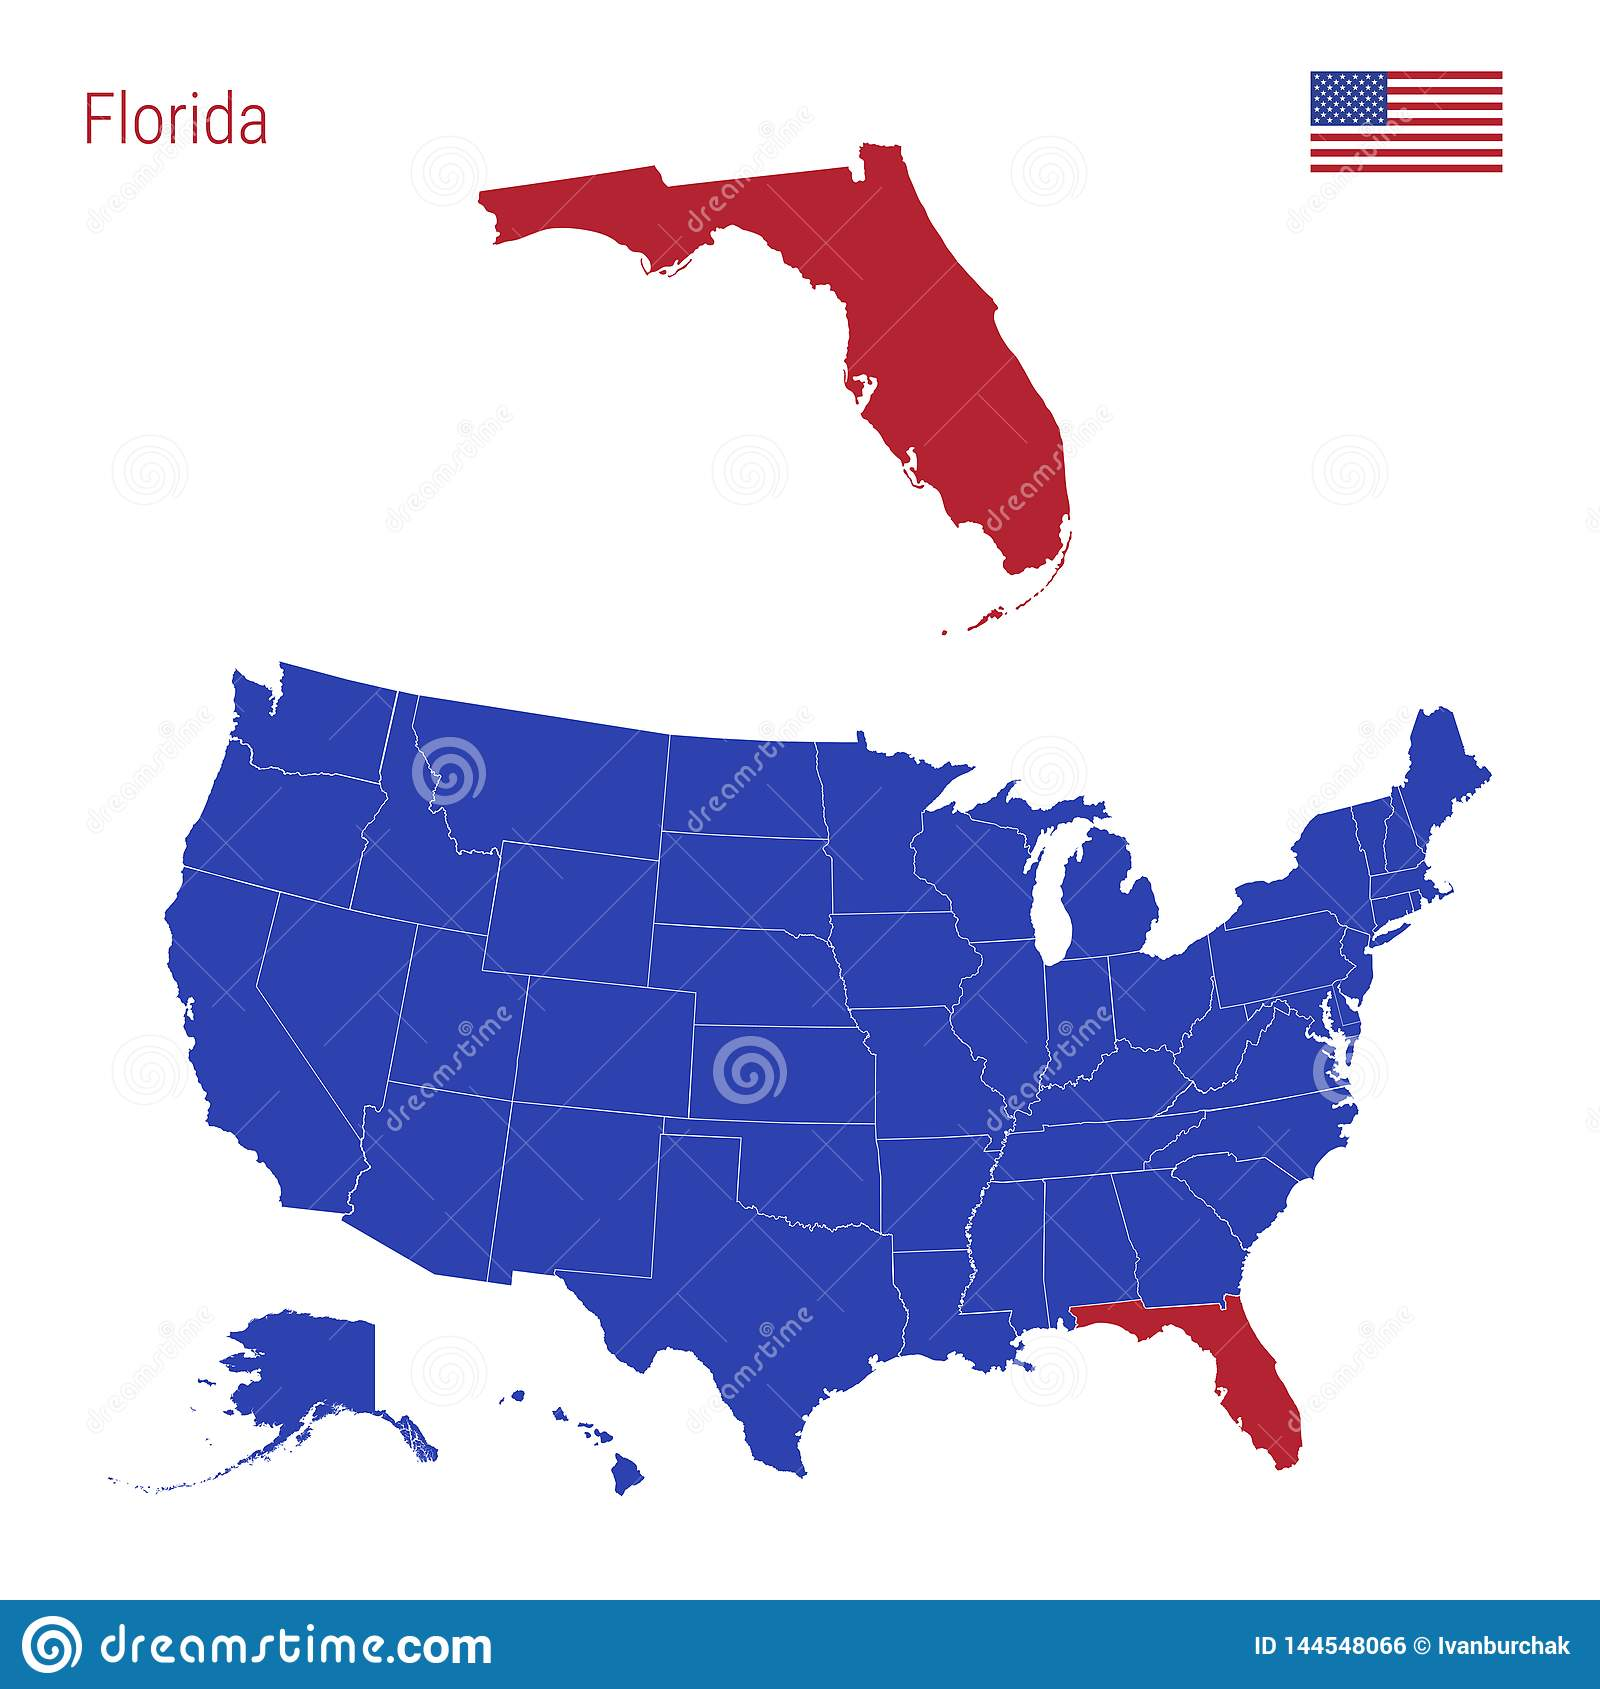 United States Map Florida.The State Of Florida Is Highlighted In Red Vector Map Of The United